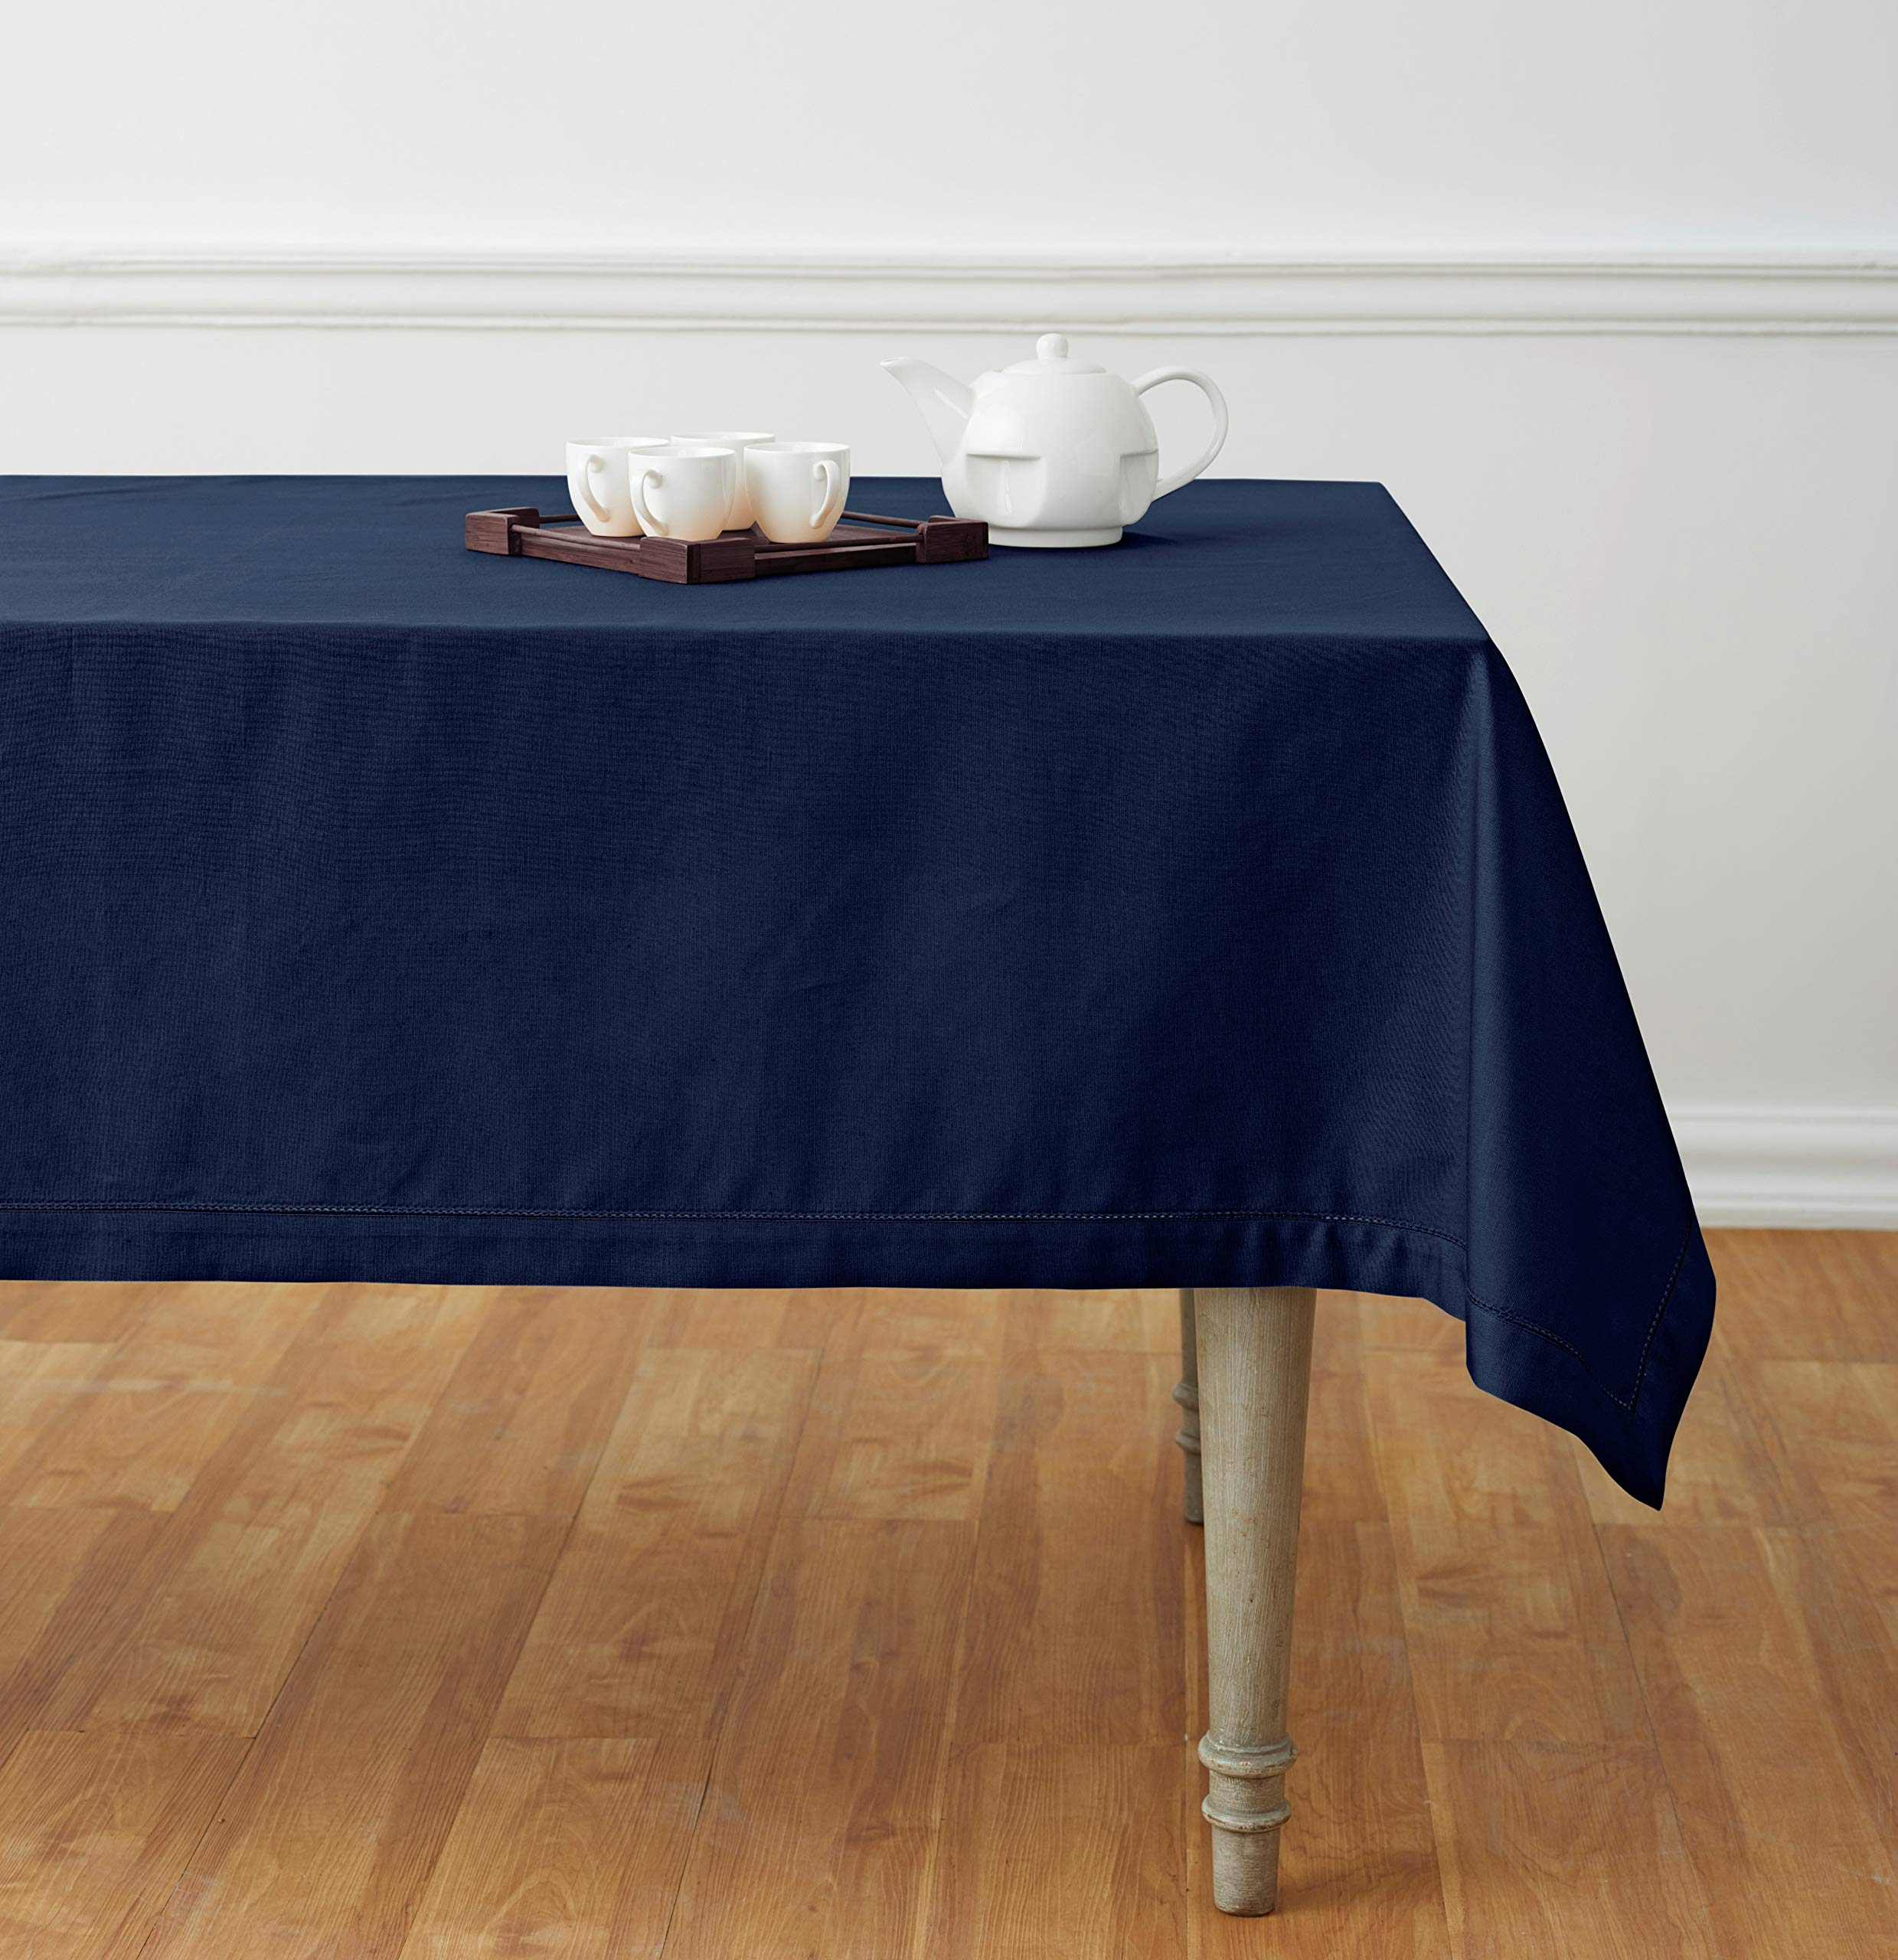 Solino Home Hemstitch Cotton Linen Tablecloth – 58 x 120 Inch, Natural Fabric Machine Washable - Navy Tablecloth for Indoor and Outdoor use